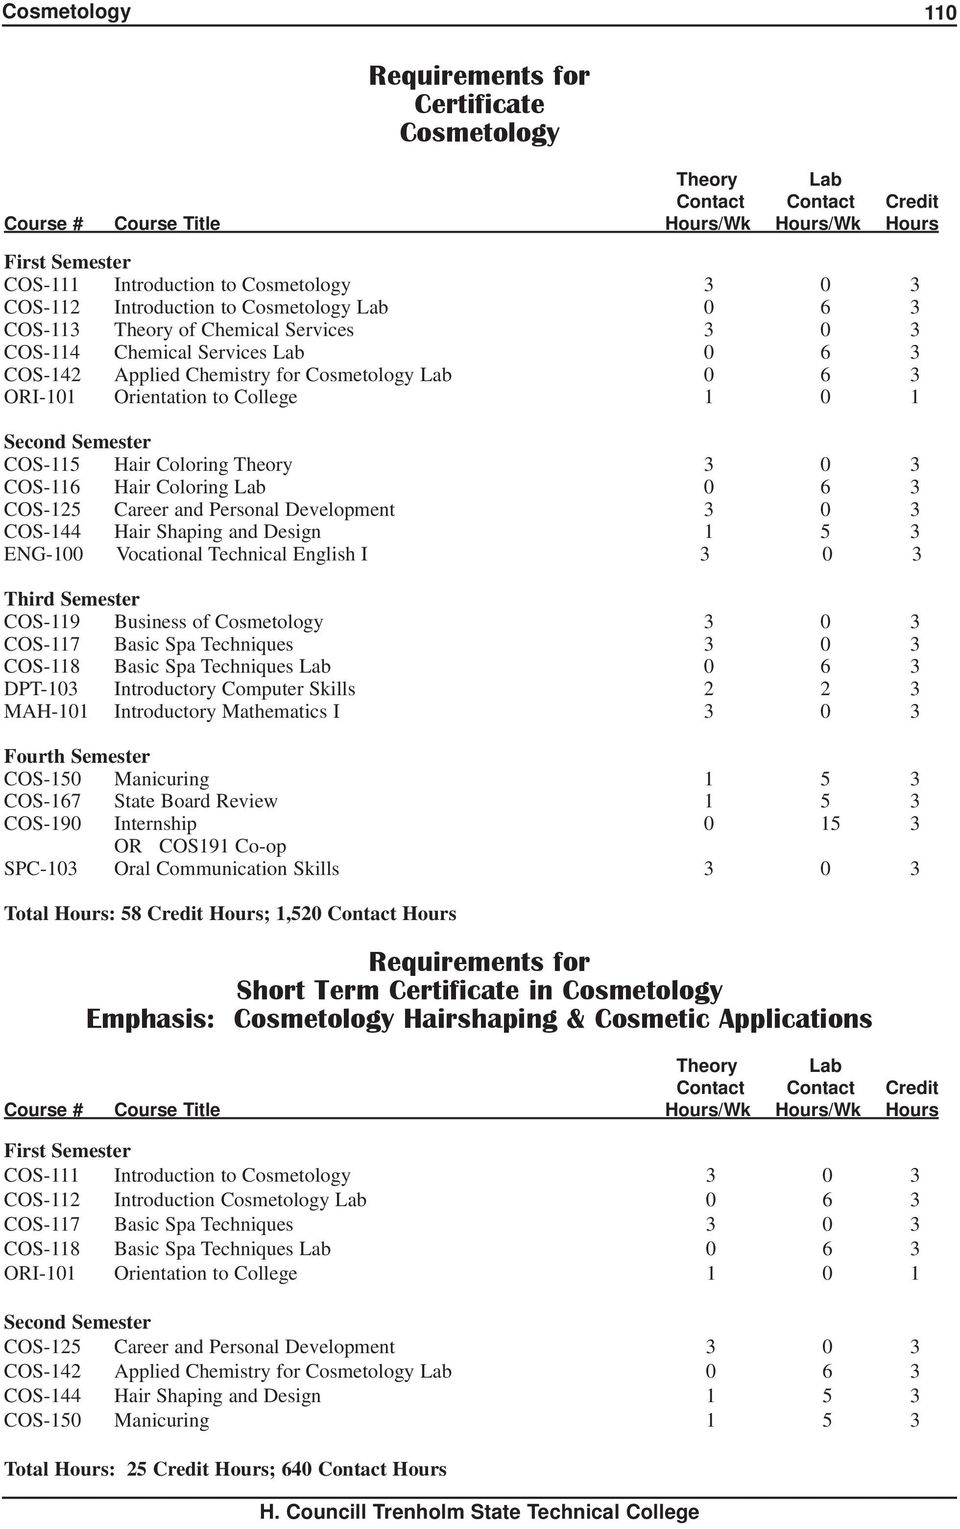 Design 1 5 3 ENG-100 Vocational Technical English I 3 0 3 Third Semester COS-119 Business of Cosmetology 3 0 3 COS-117 Basic Spa Techniques 3 0 3 COS-118 Basic Spa Techniques Lab 0 6 3 DPT-103